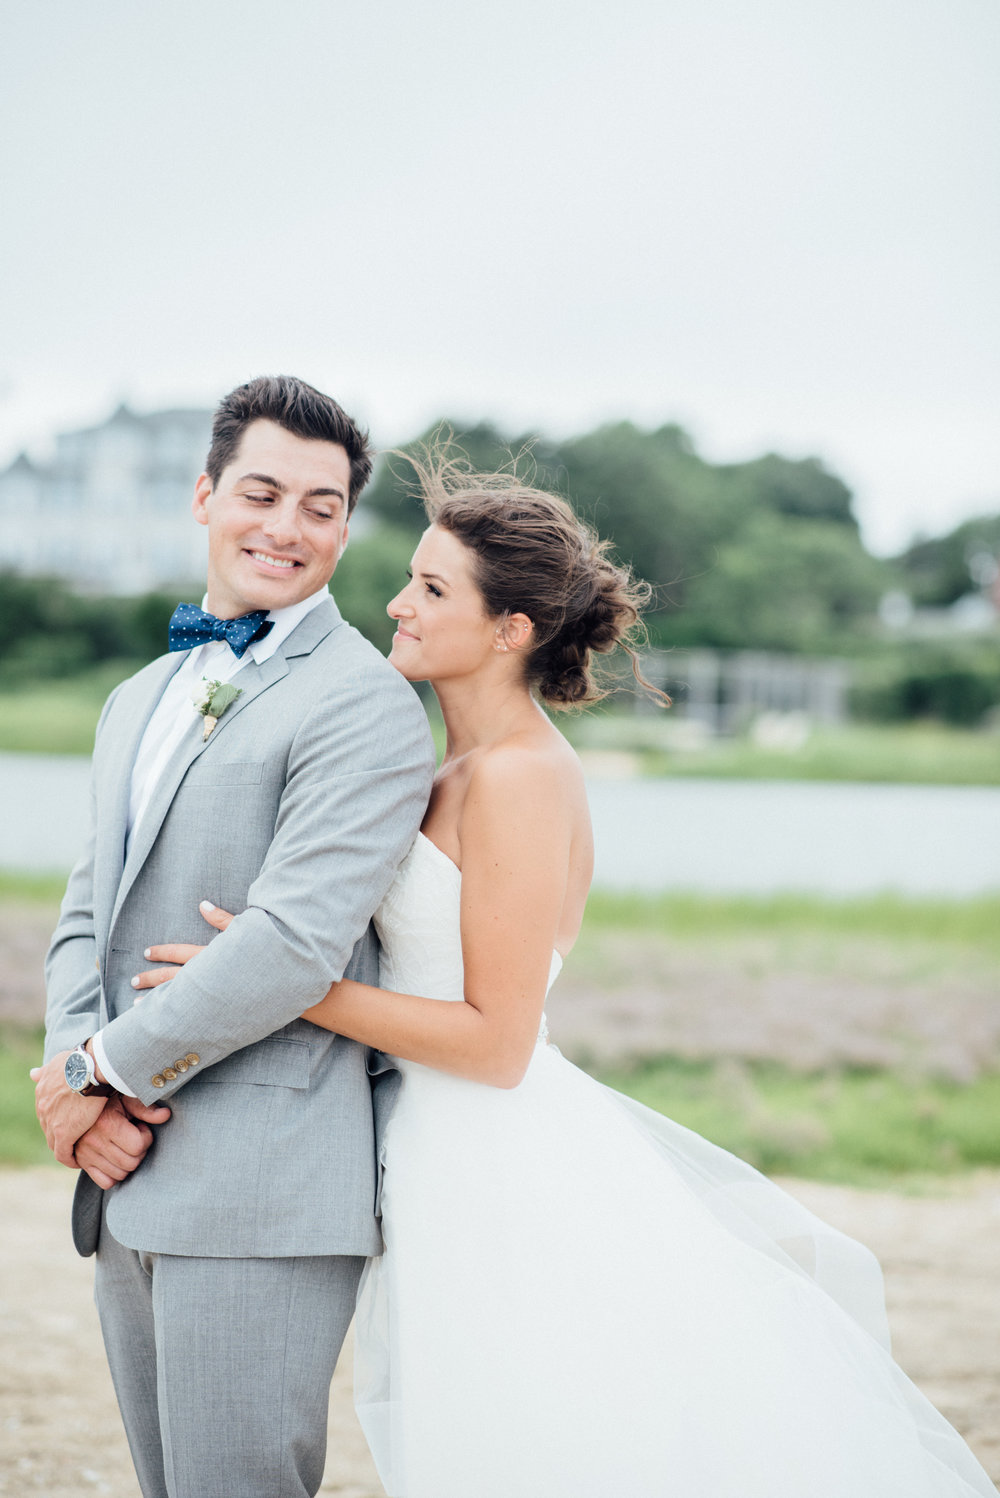 Amanda & Pete - Martha's Vineyard